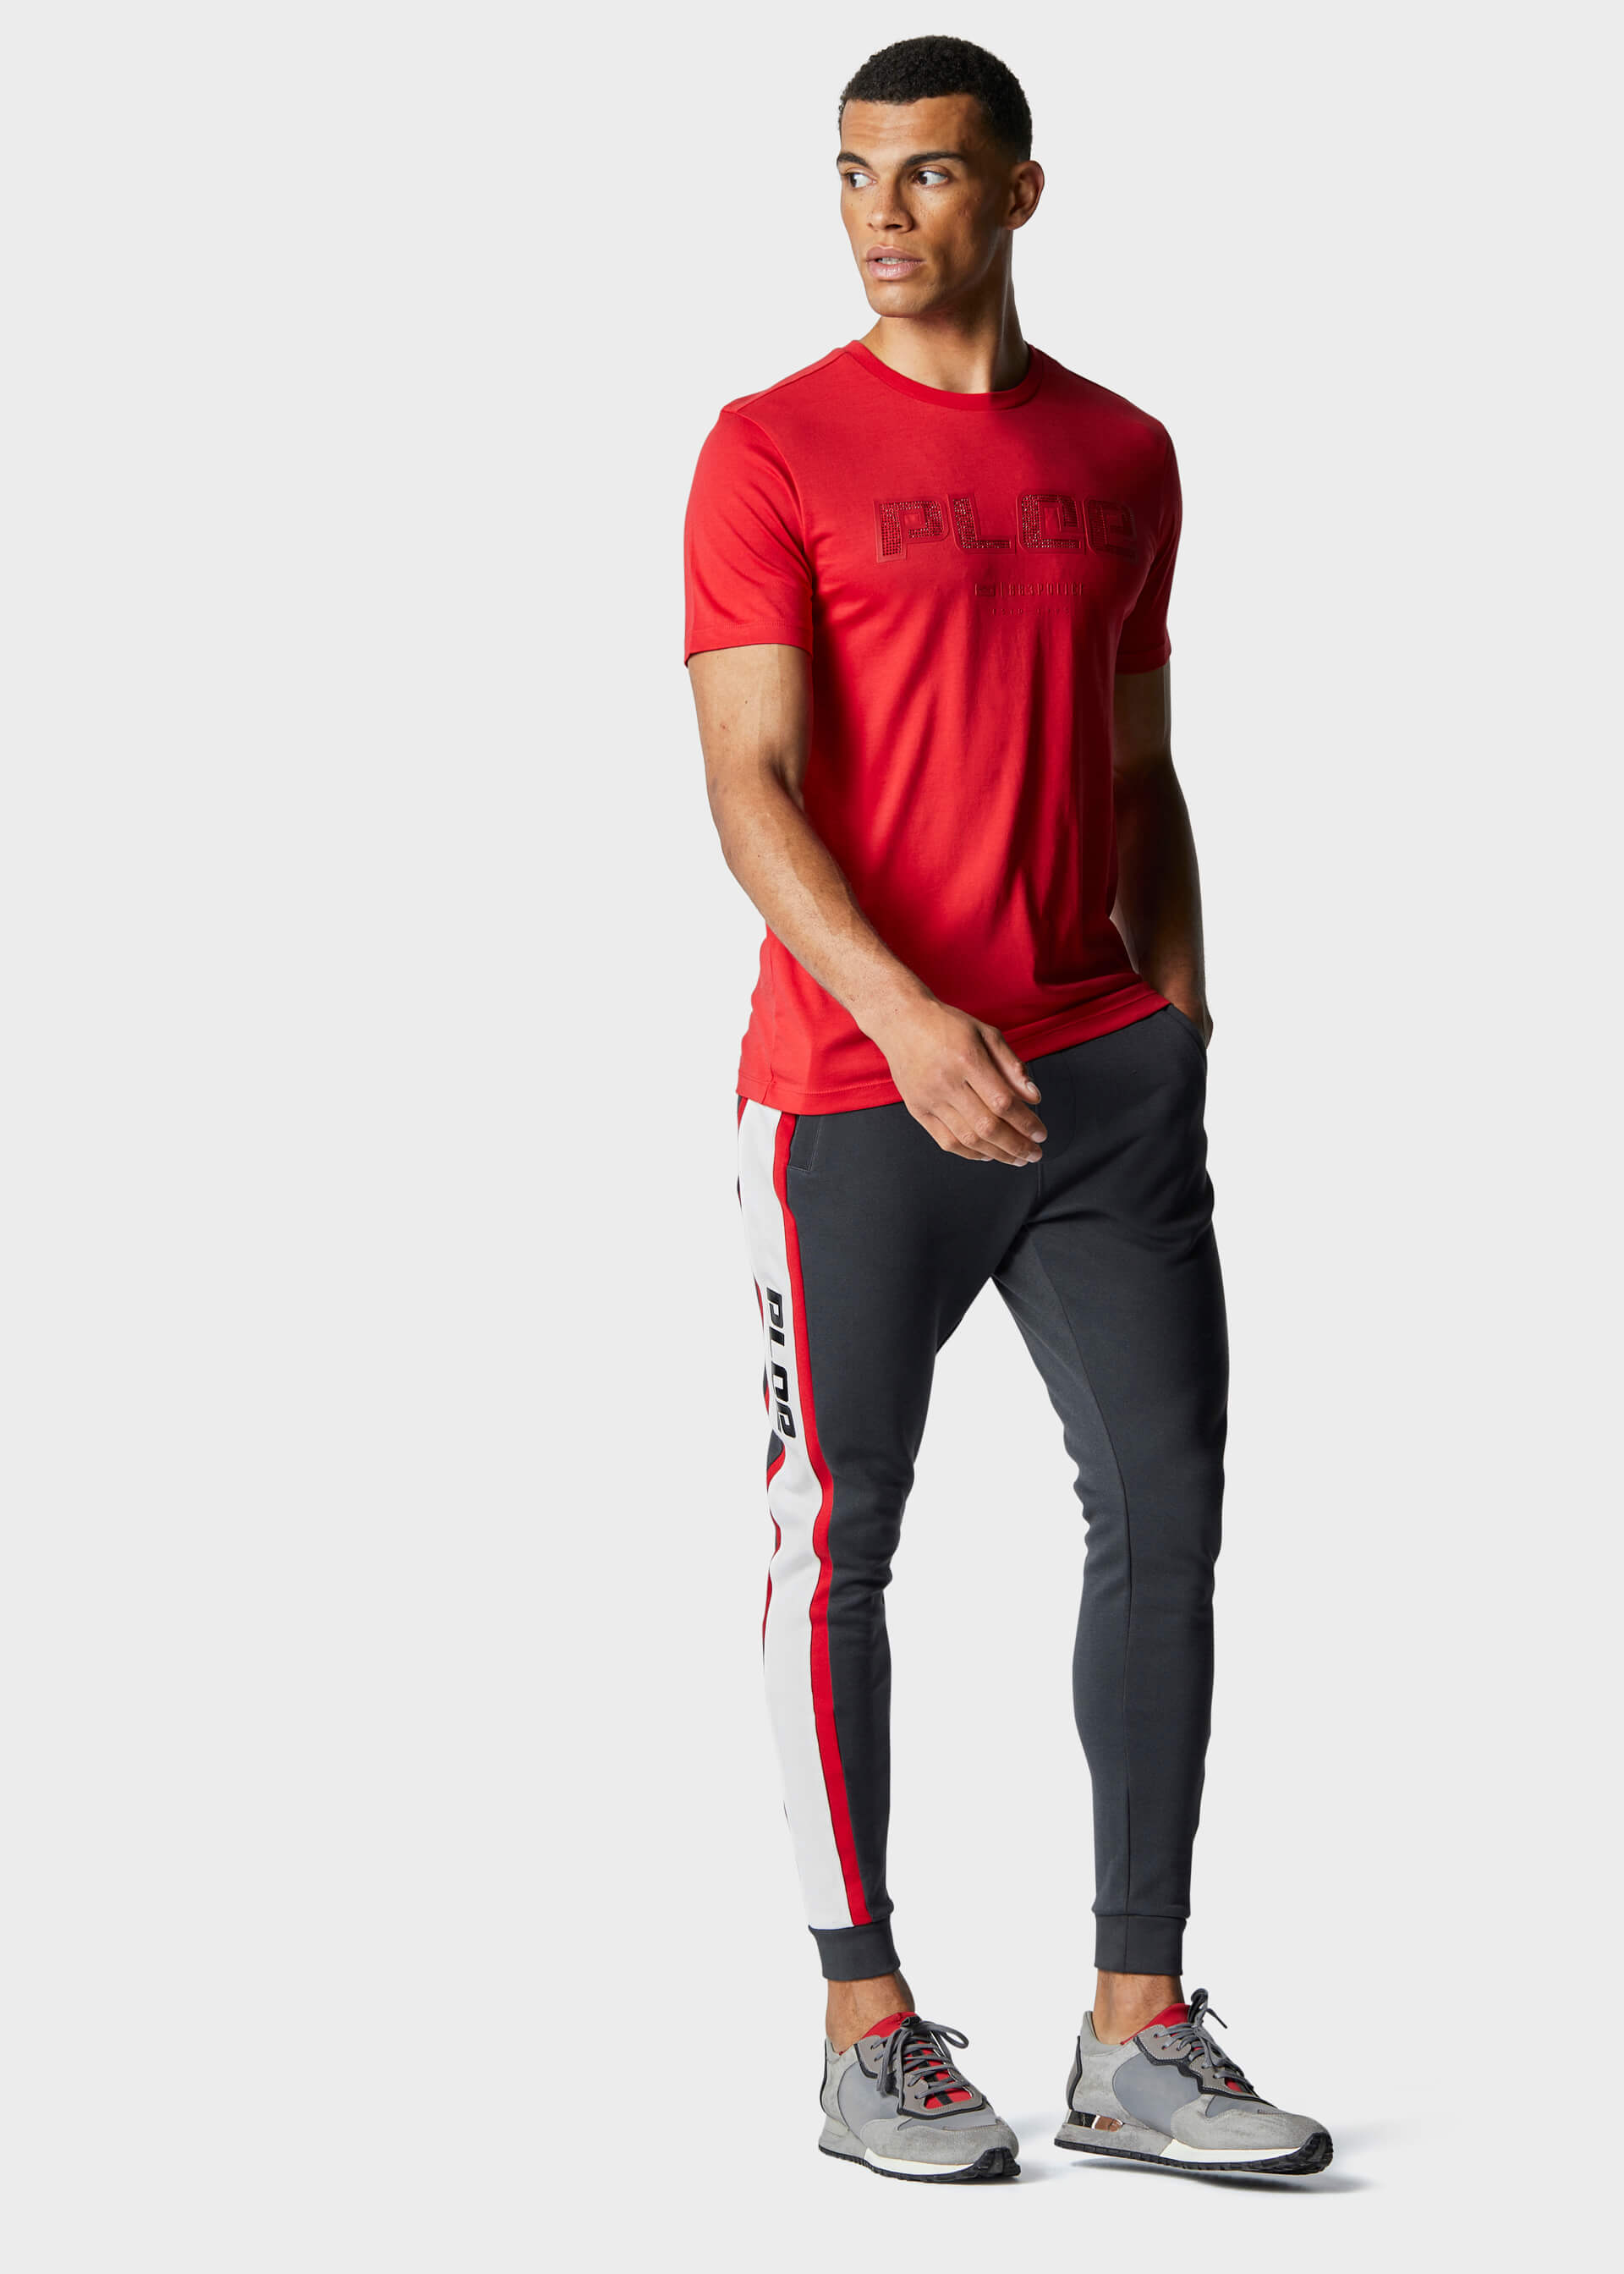 Favre Red T Shirt second_image